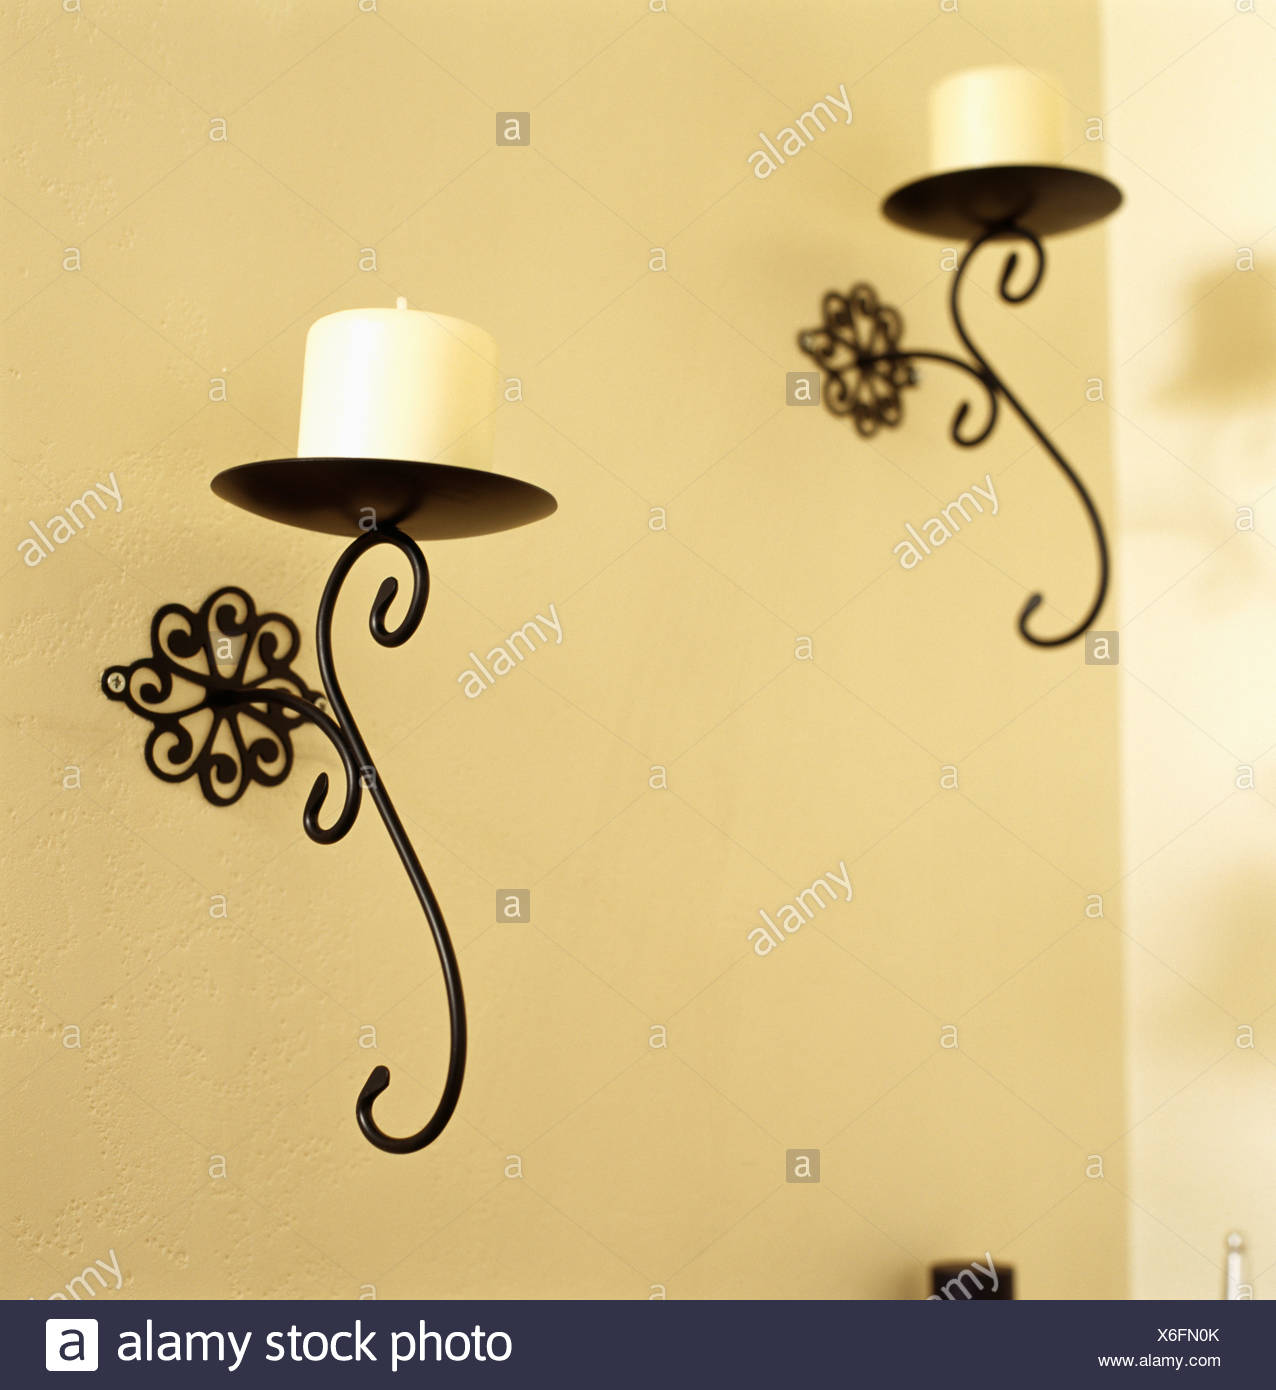 Luxury Wrought Iron Wall Decor With Candles Image Collection - Wall ...